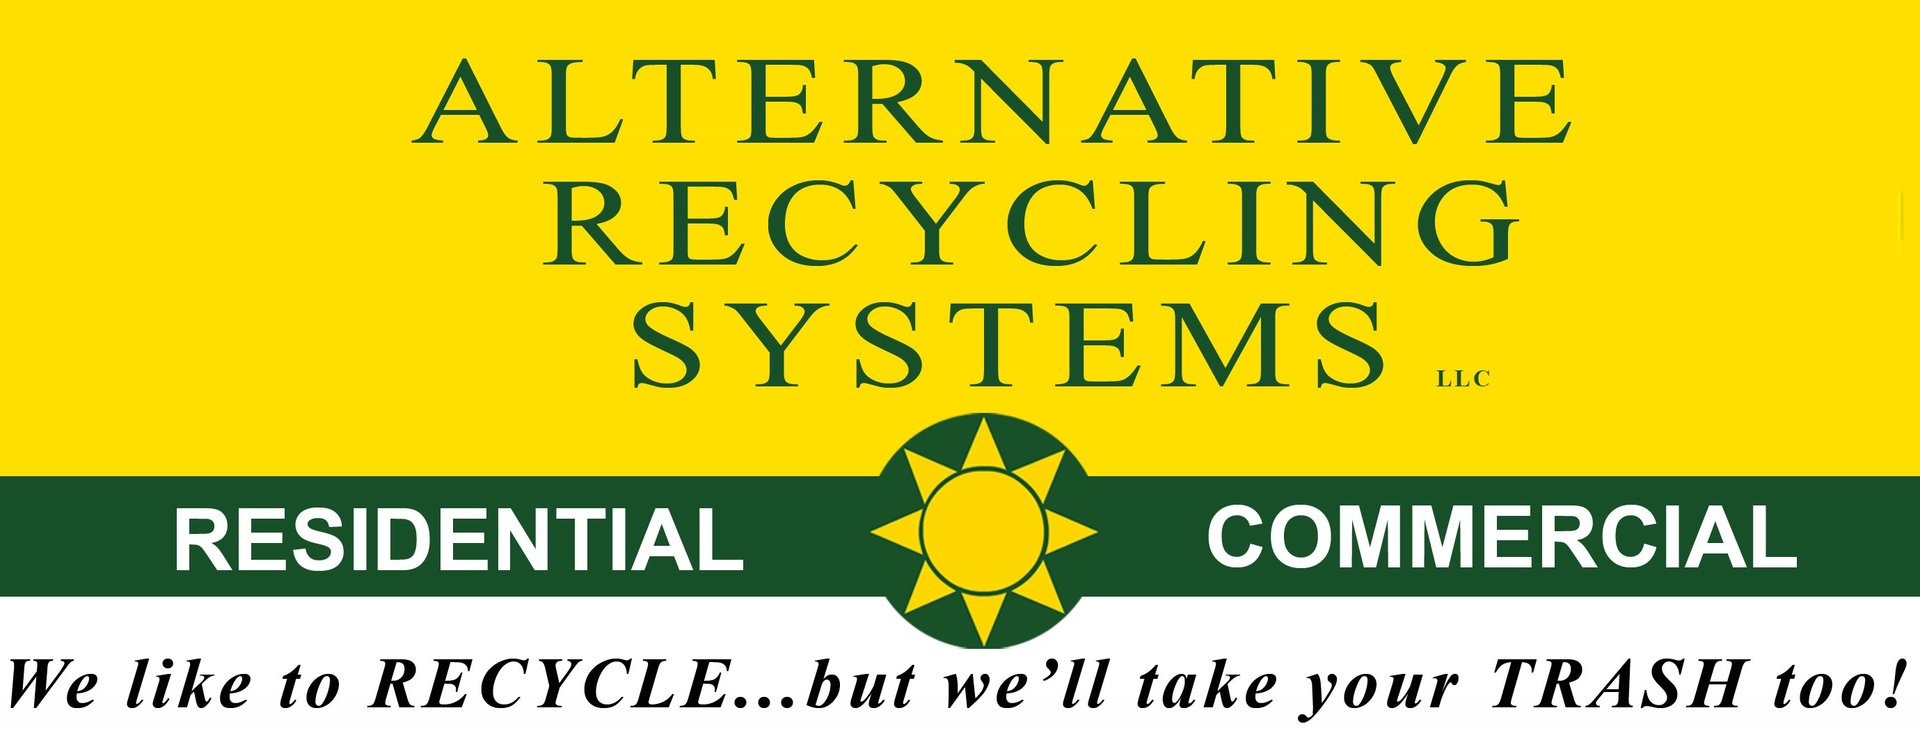 Alternative Recycling Systems logo